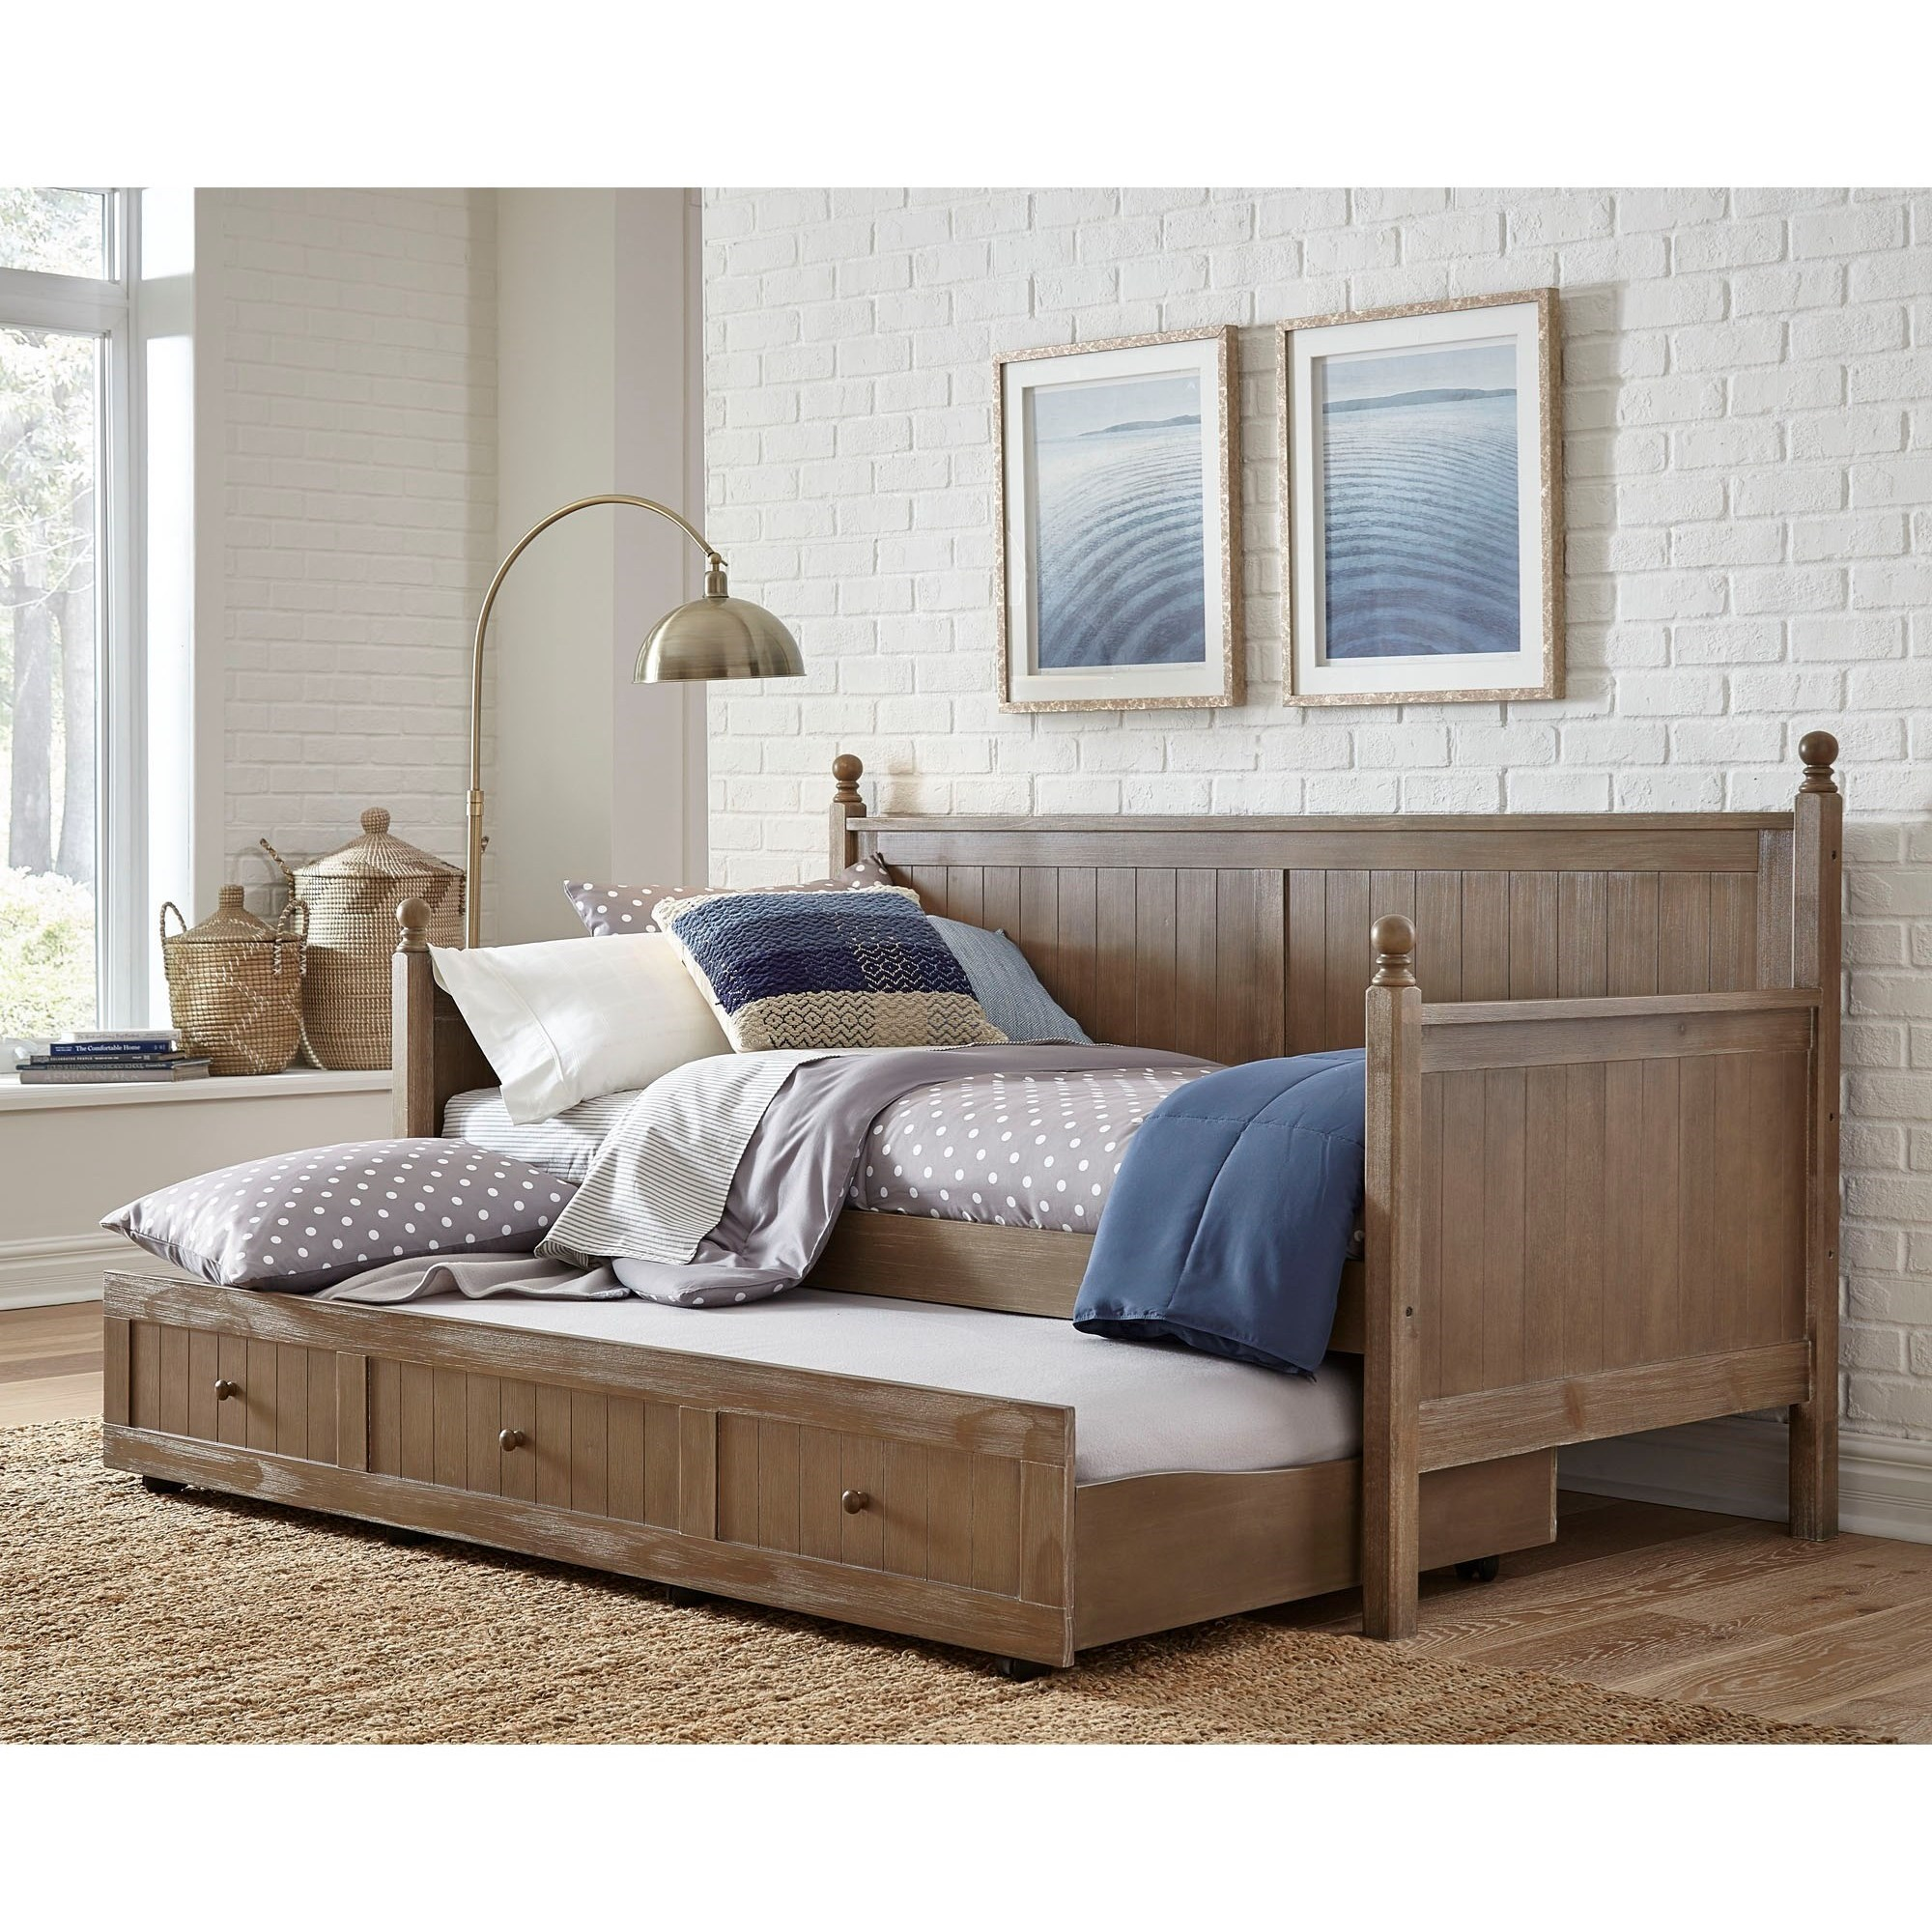 Fashion Bed Group Daybeds Carston Daybed With Trundle Darvin Furniture Daybeds